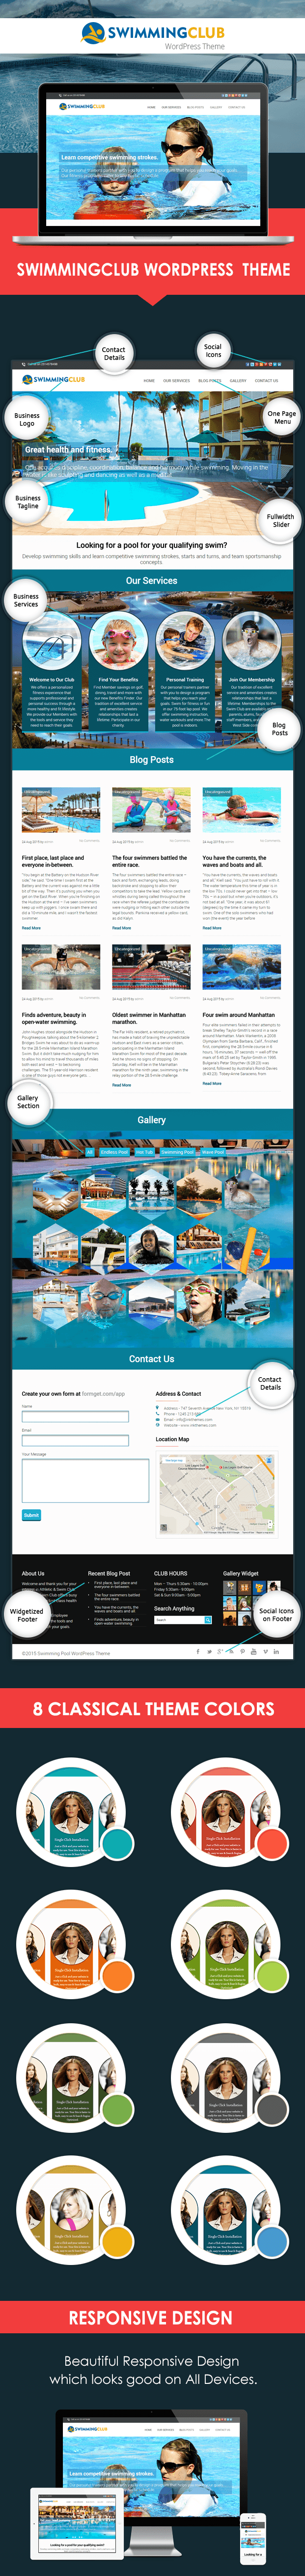 WordPress theme for swimming pool clubs and academies